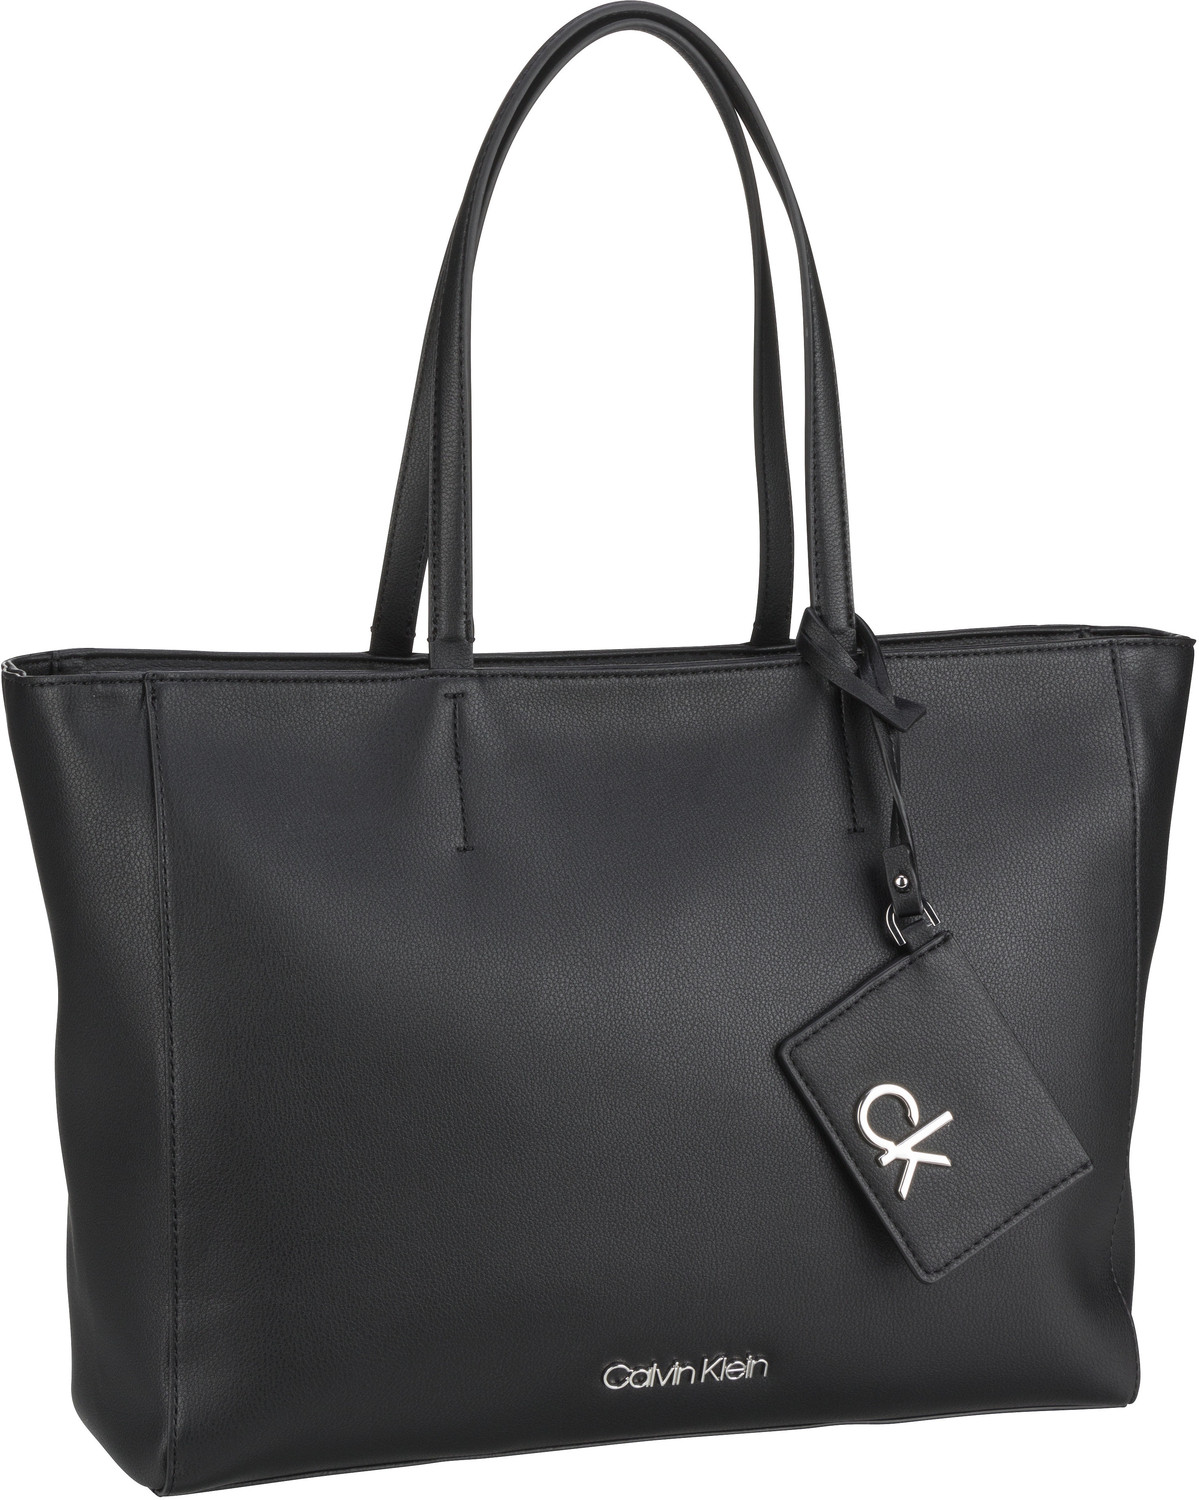 calvin klein -  Handtasche CK Must Shopper MD PF20 Black